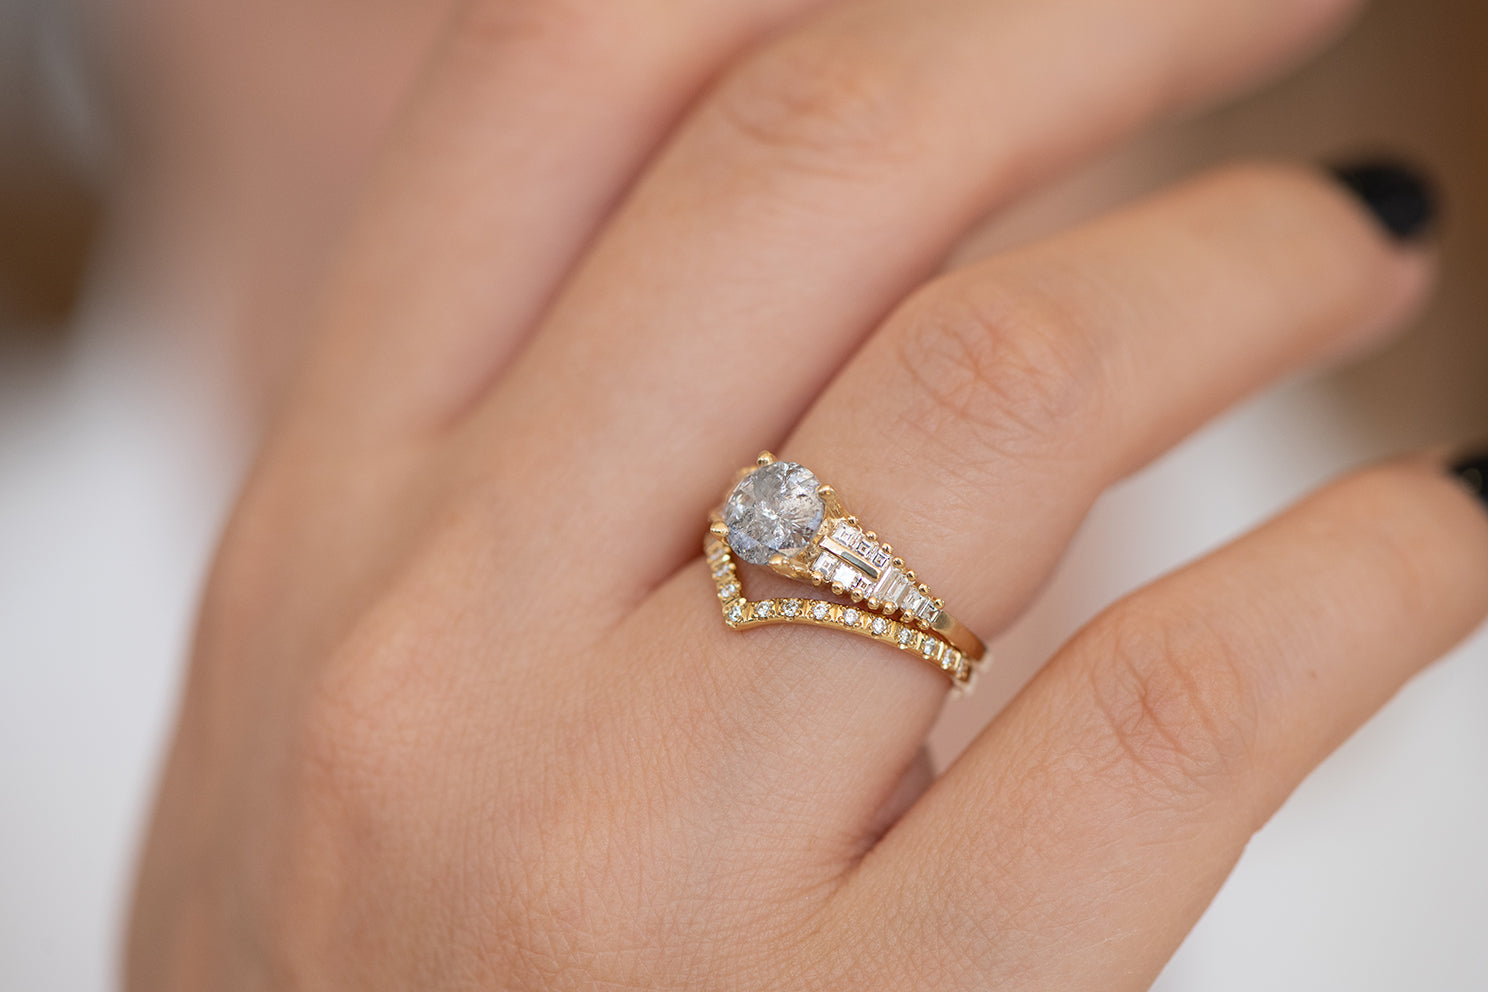 One Carat Diamond Ring with a Snowy Diamond on Hand in set up close